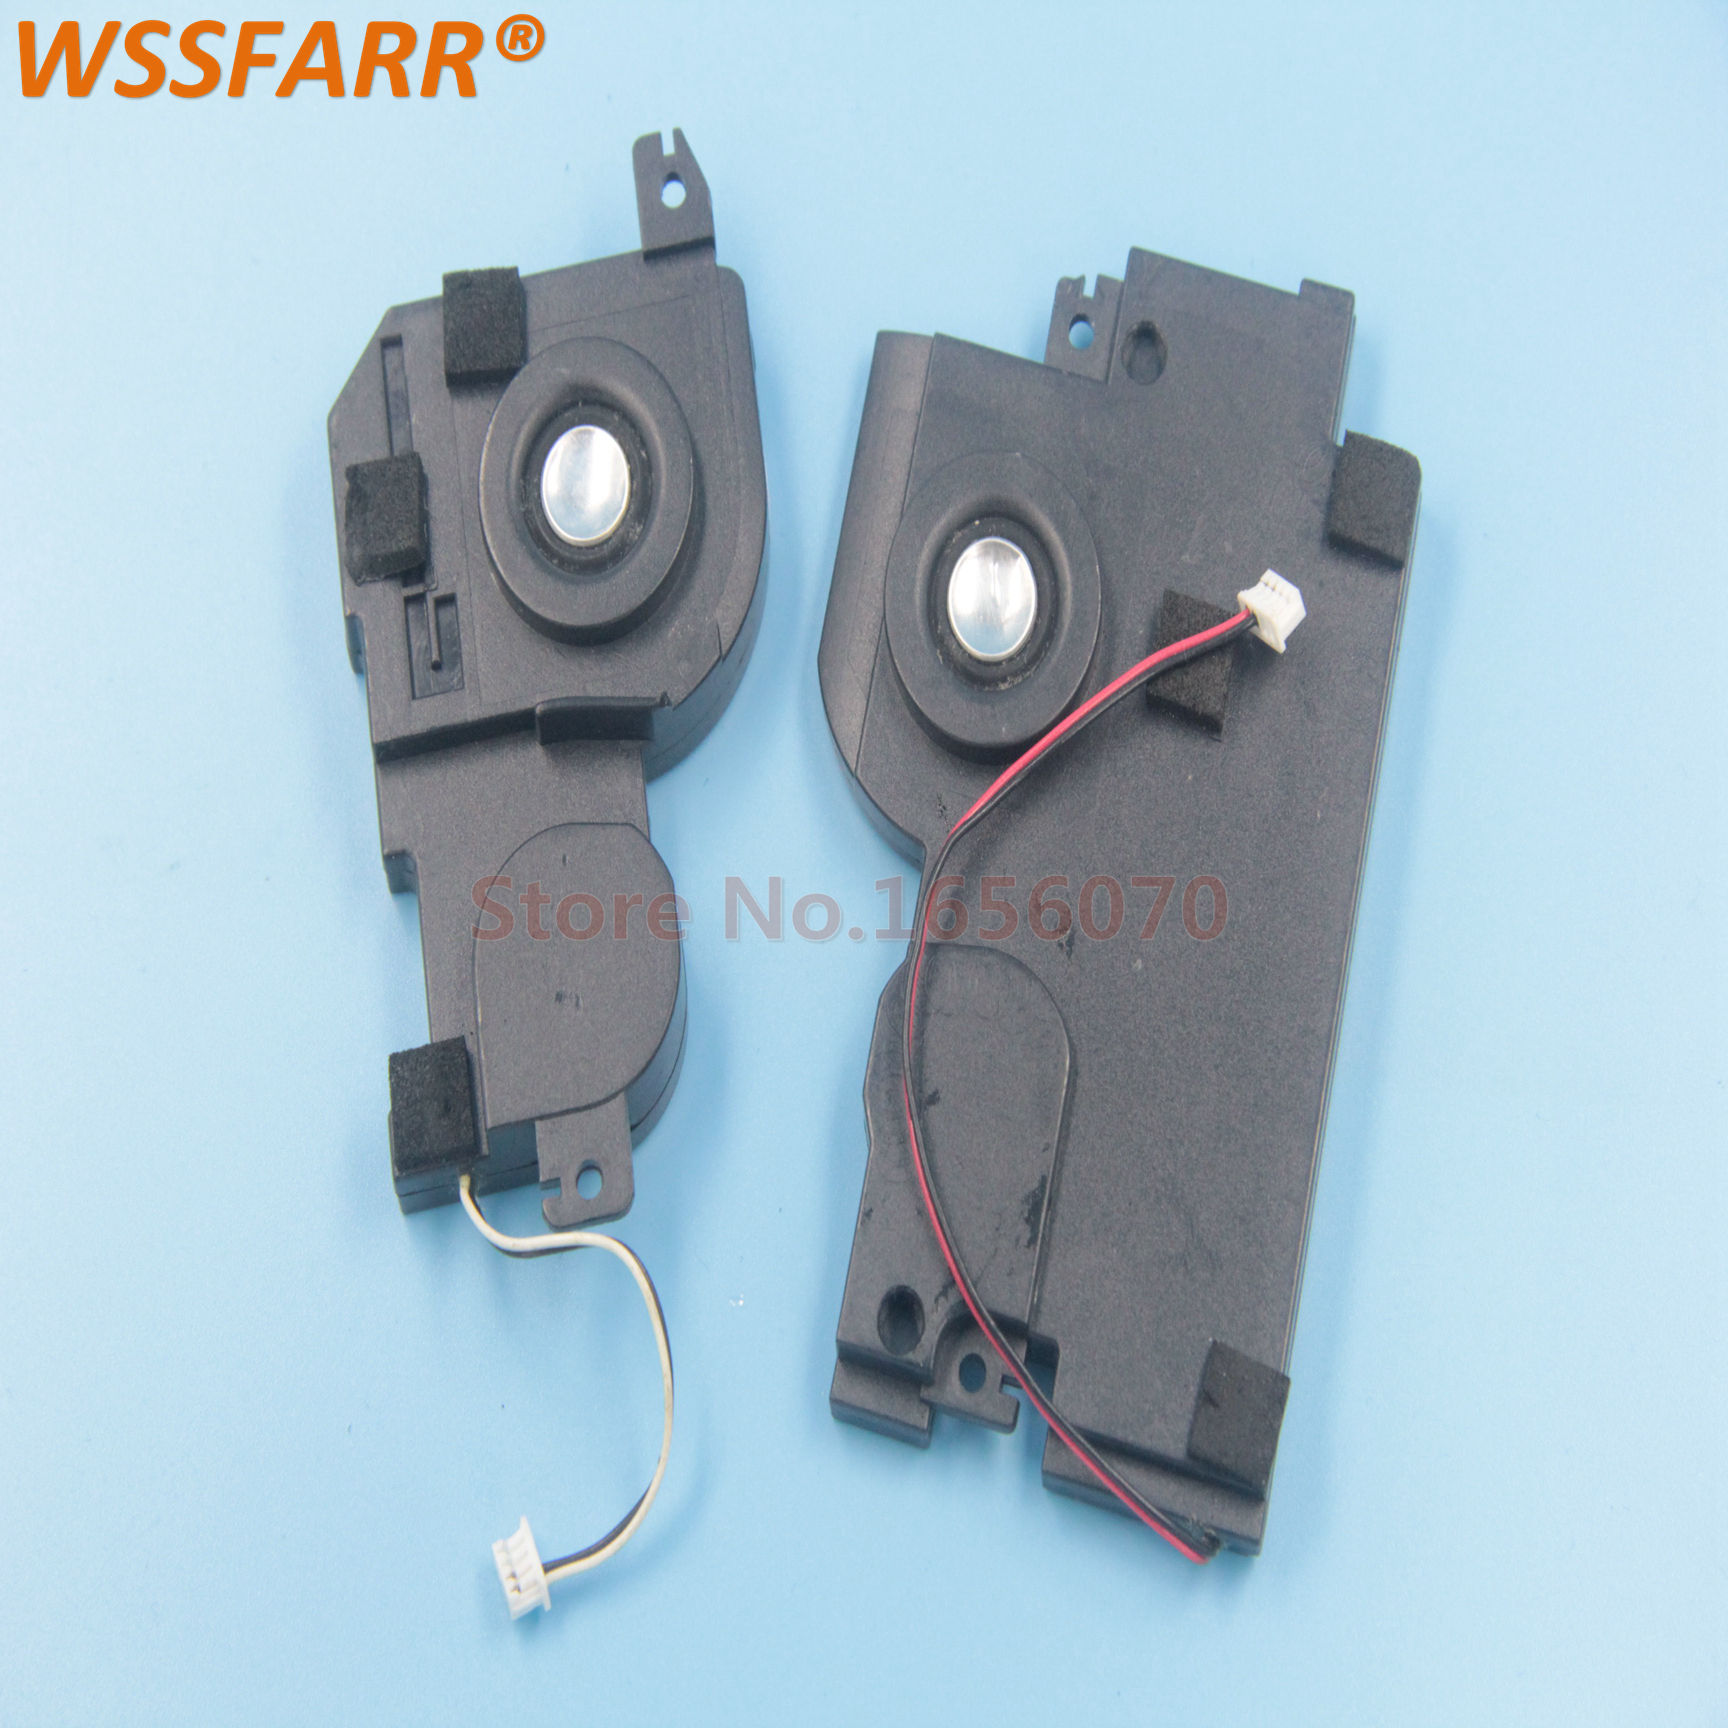 medium resolution of original internal speaker for toshiba p200 p205 x200 left and right speakers pk230006e00 pk230006e10 100